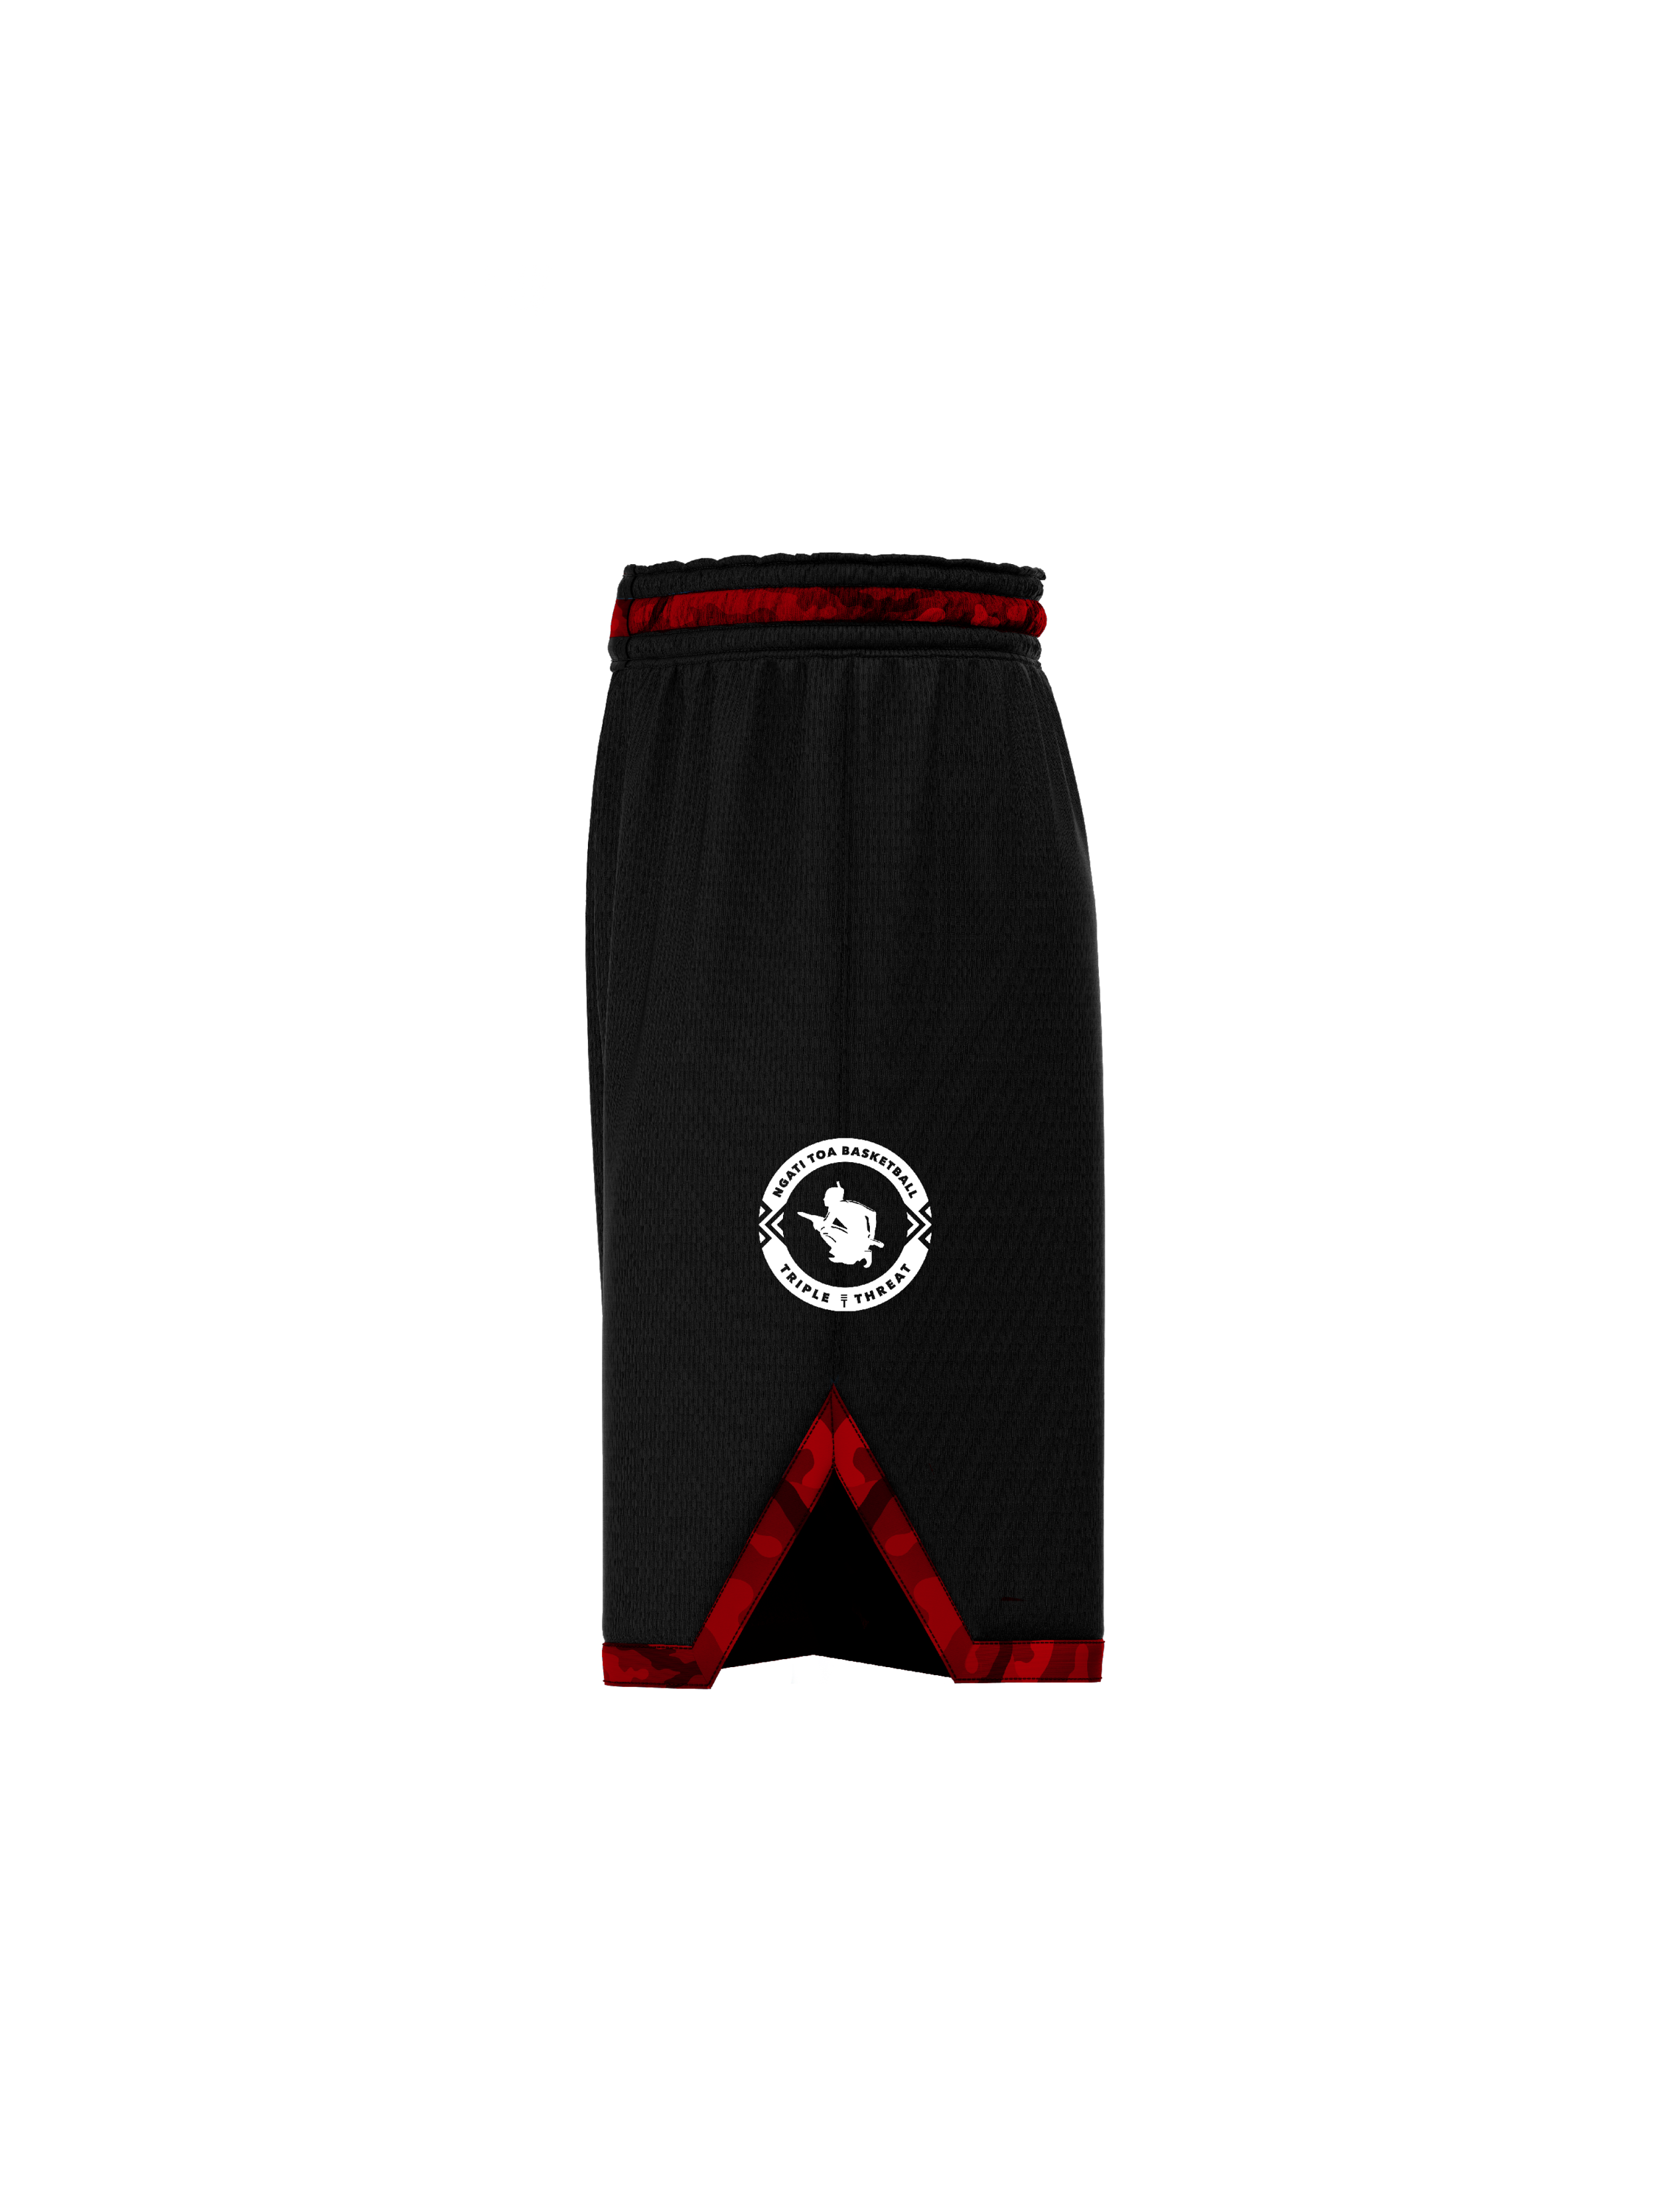 Ngati Toa KIDS short - Black & Red camo